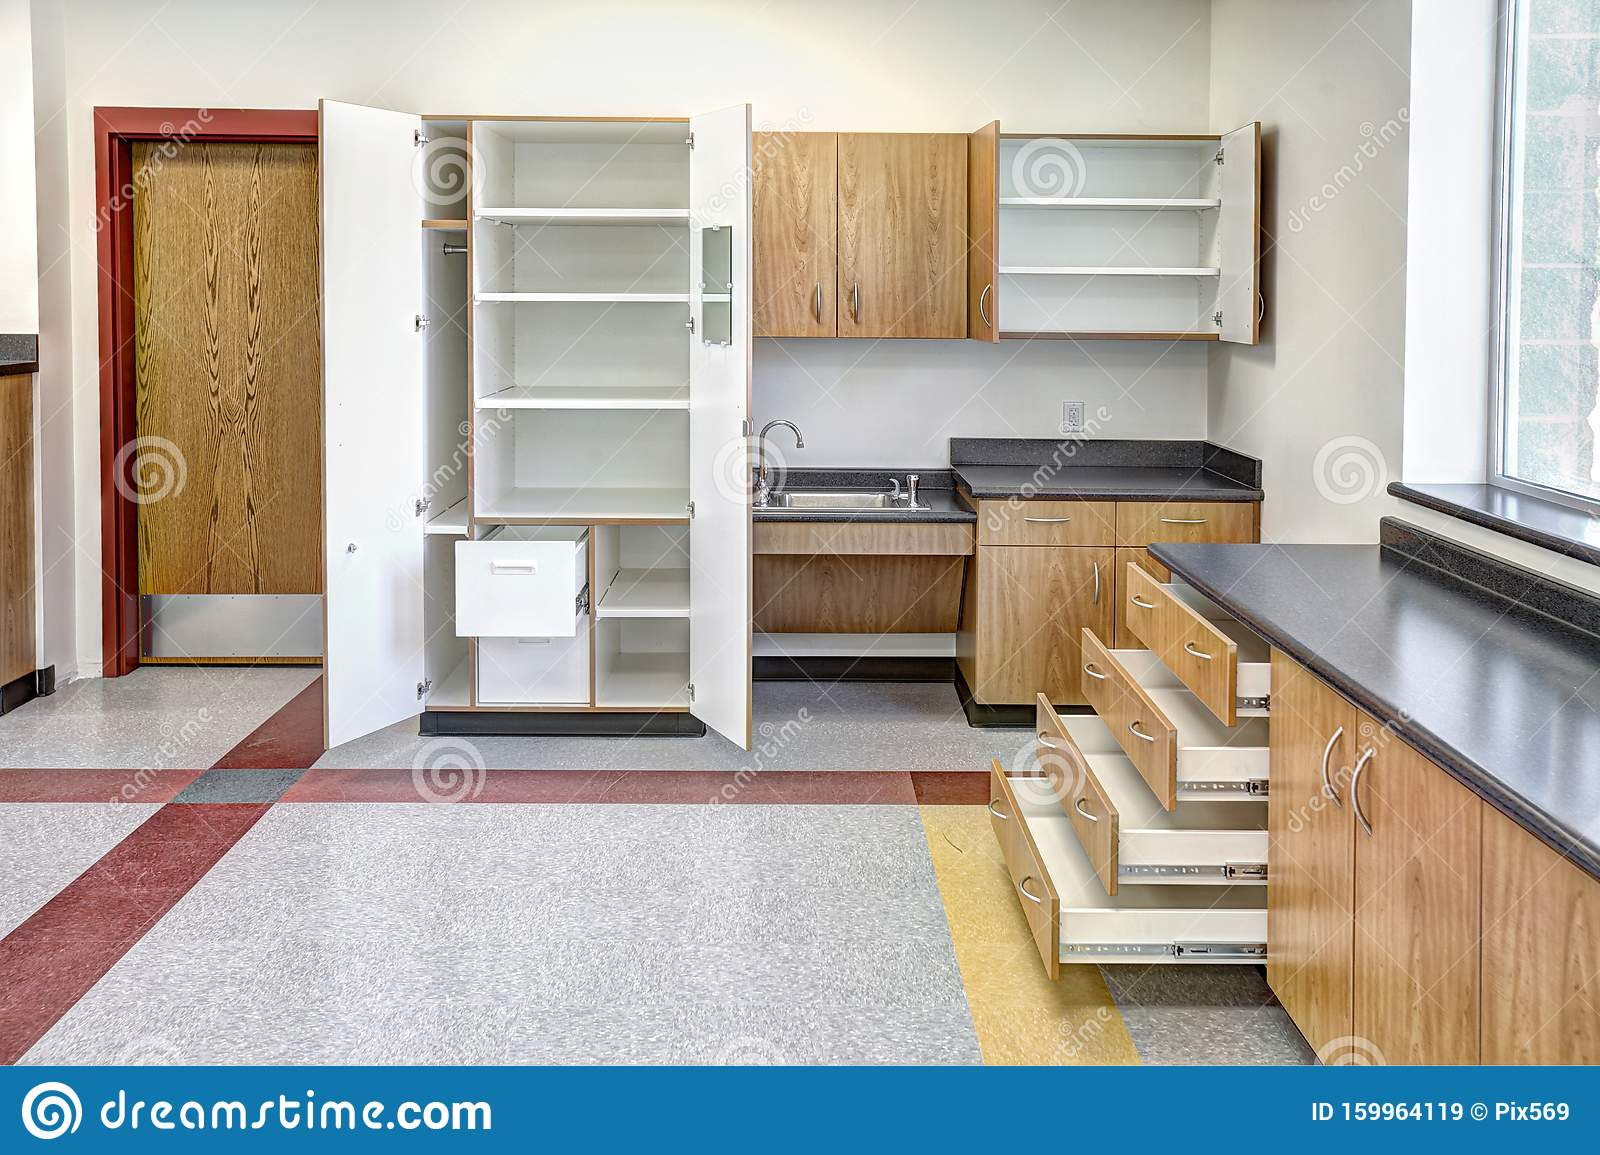 Doors And Drawers Open On New Cabinets In A School. Stock ...